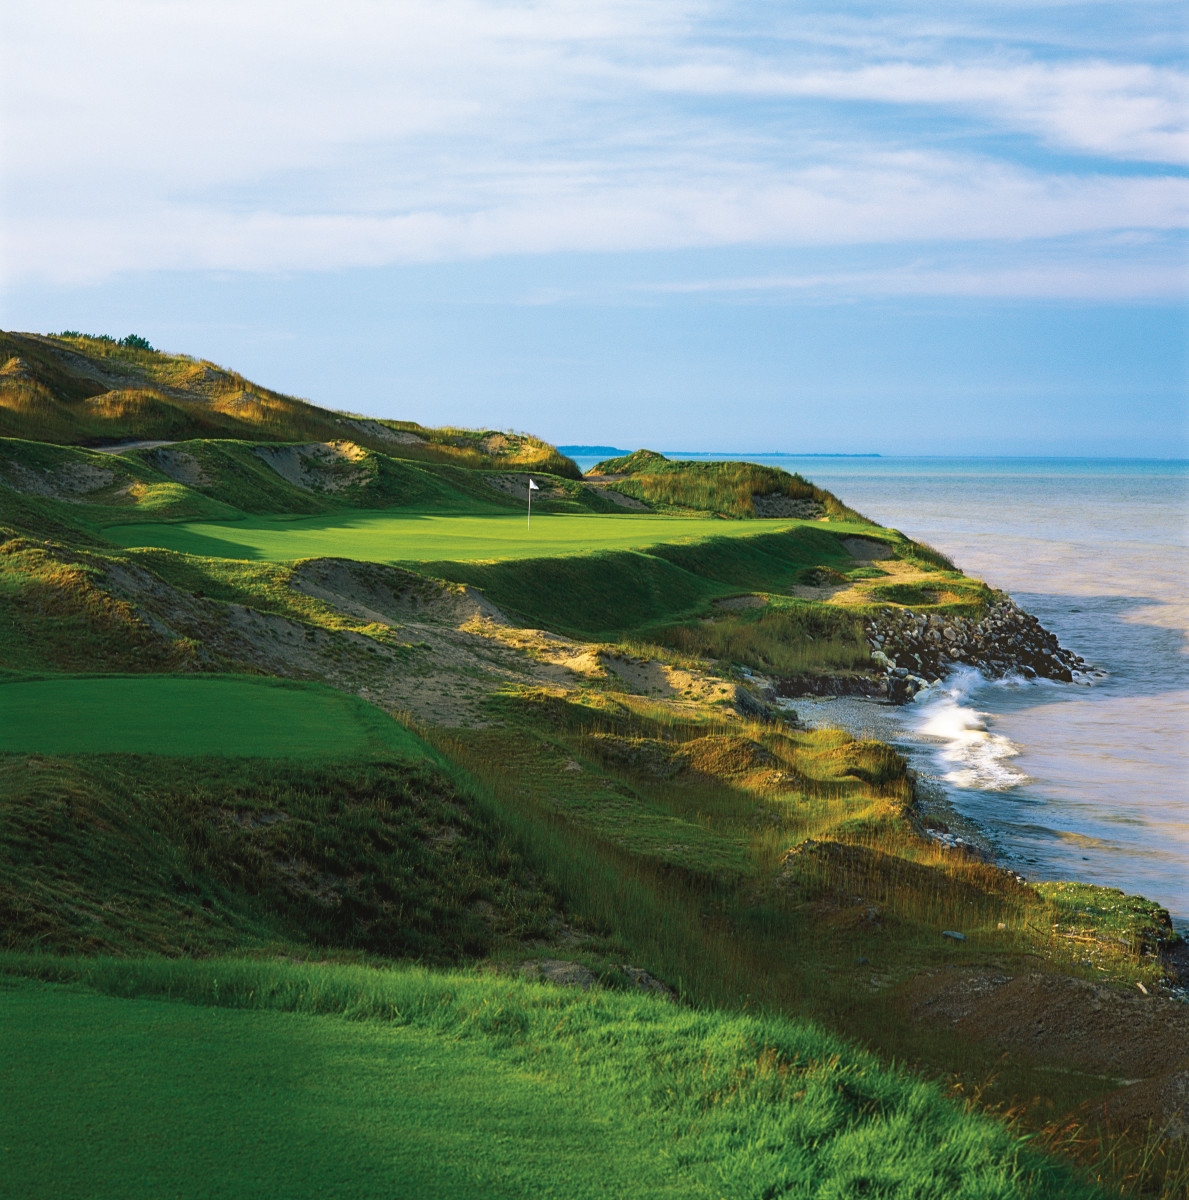 Whistling Straits' Straits has the pedigree for greatness, but the 43rd Ryder Cup will decide its rank among peers that have hosted the biennial matches.